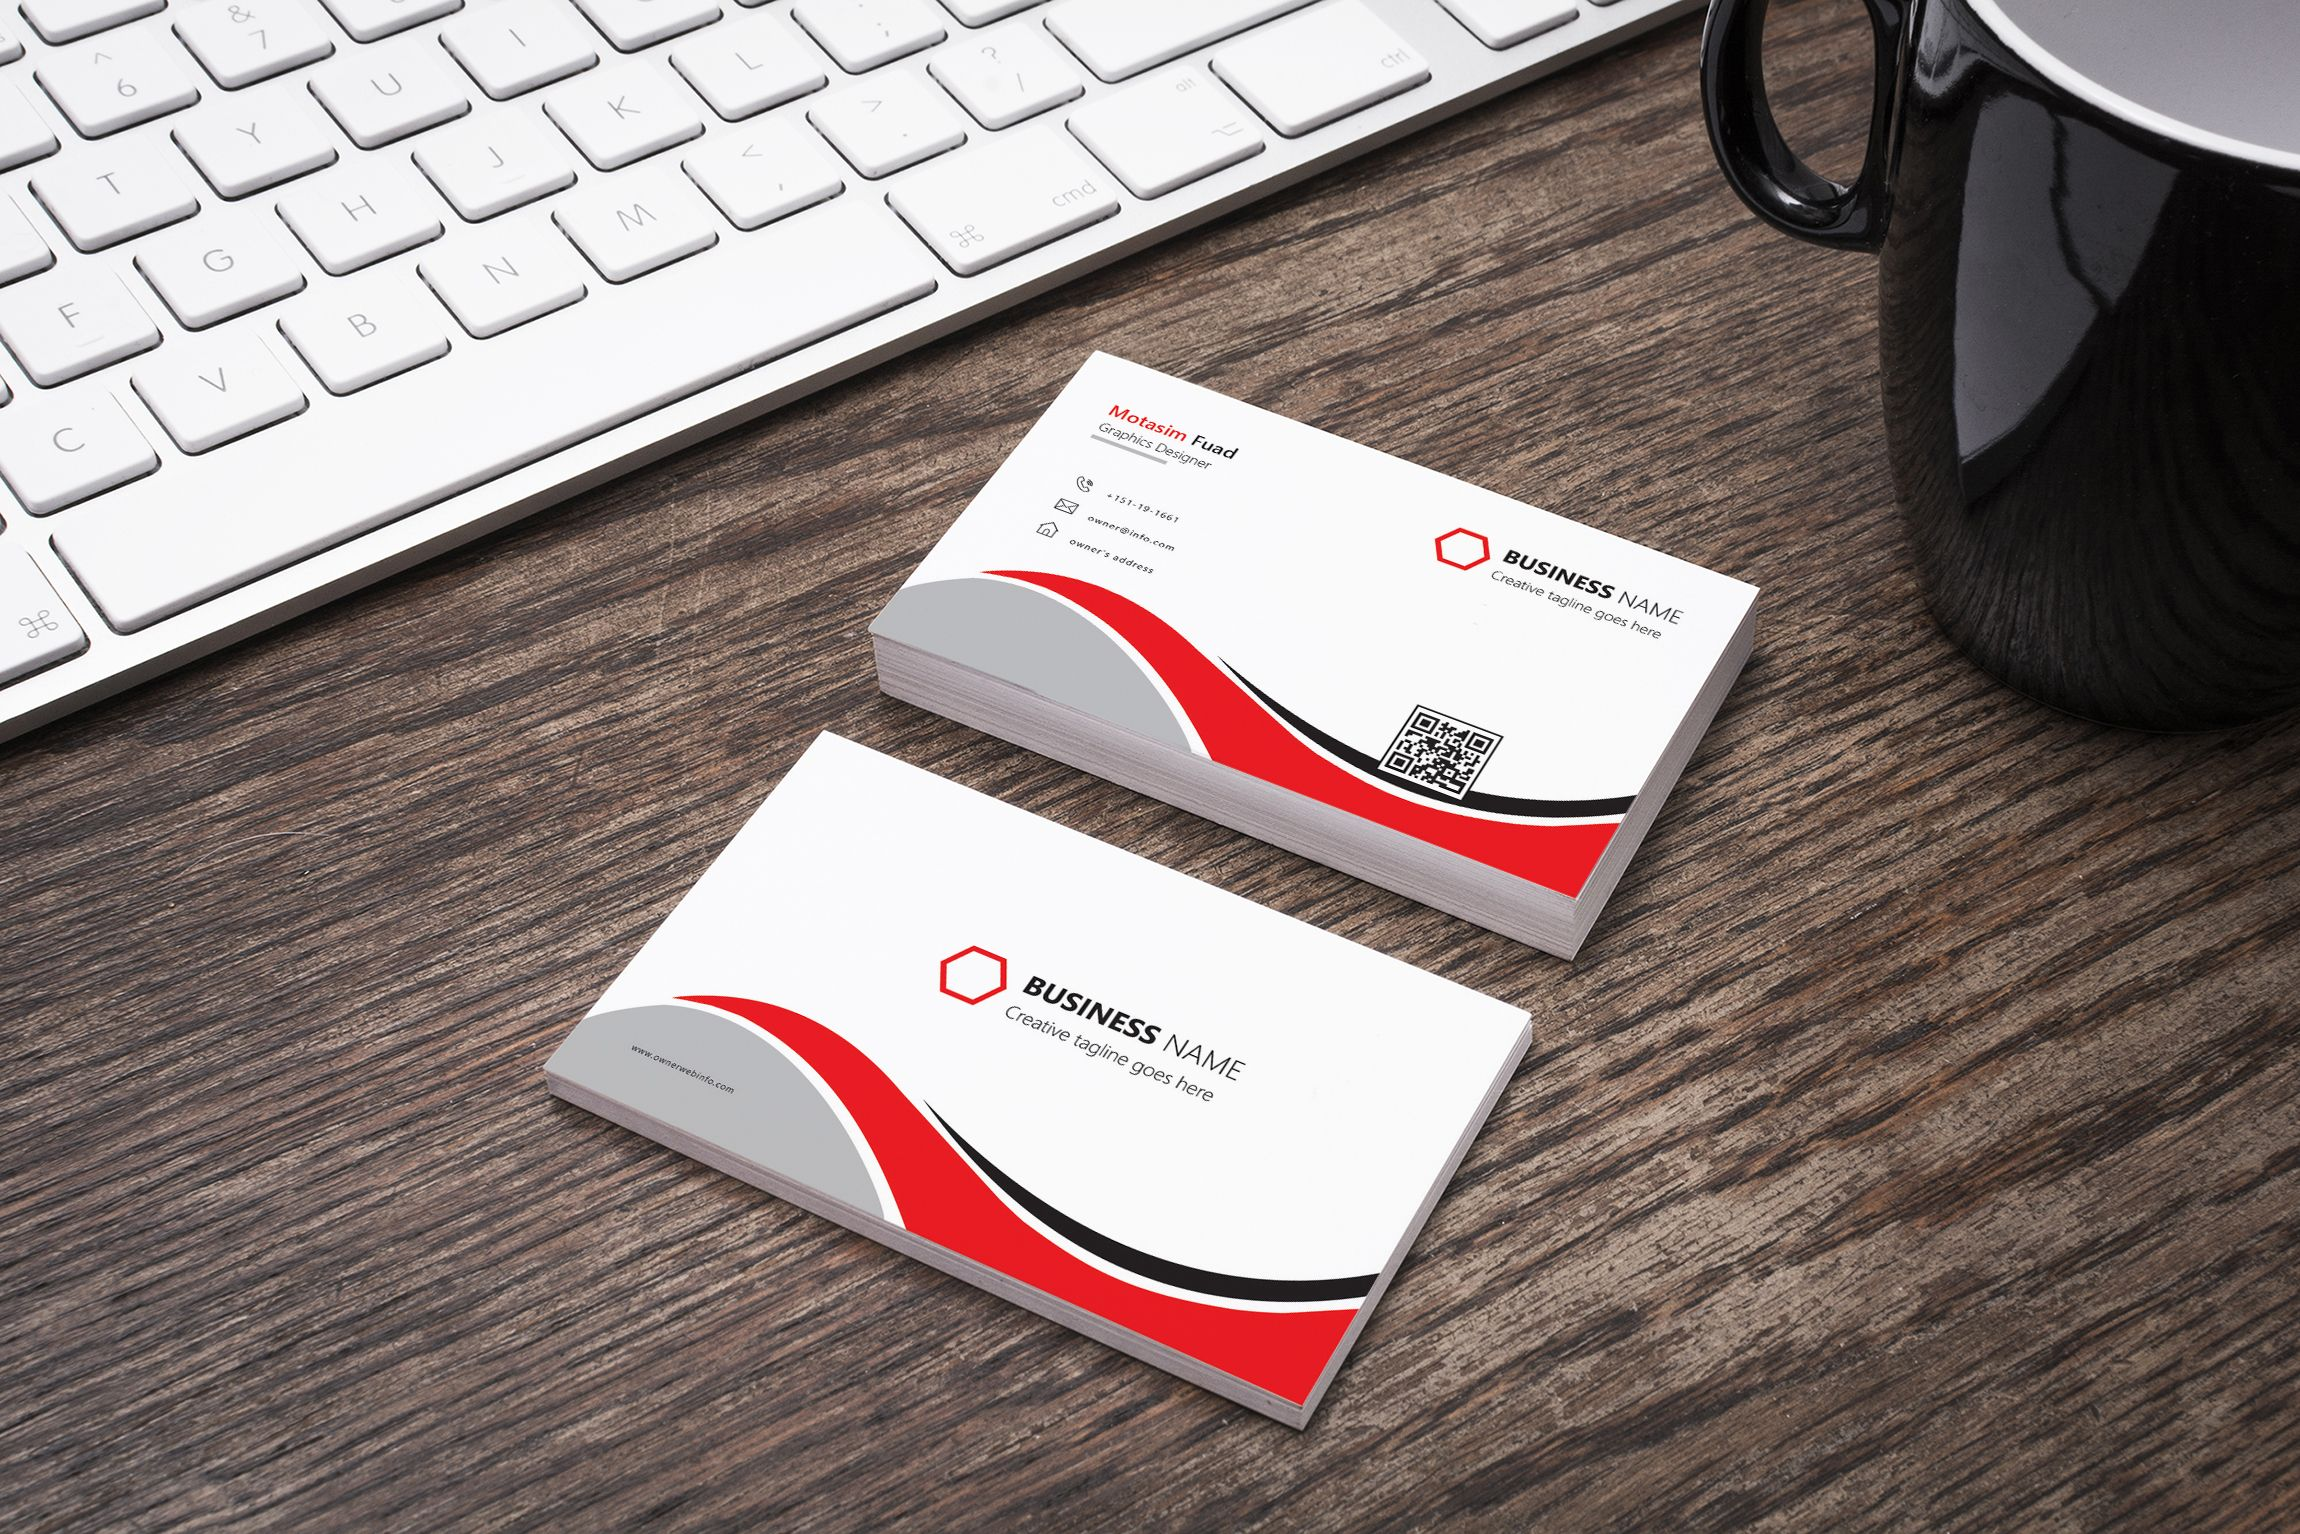 Check out my behance project creative business card